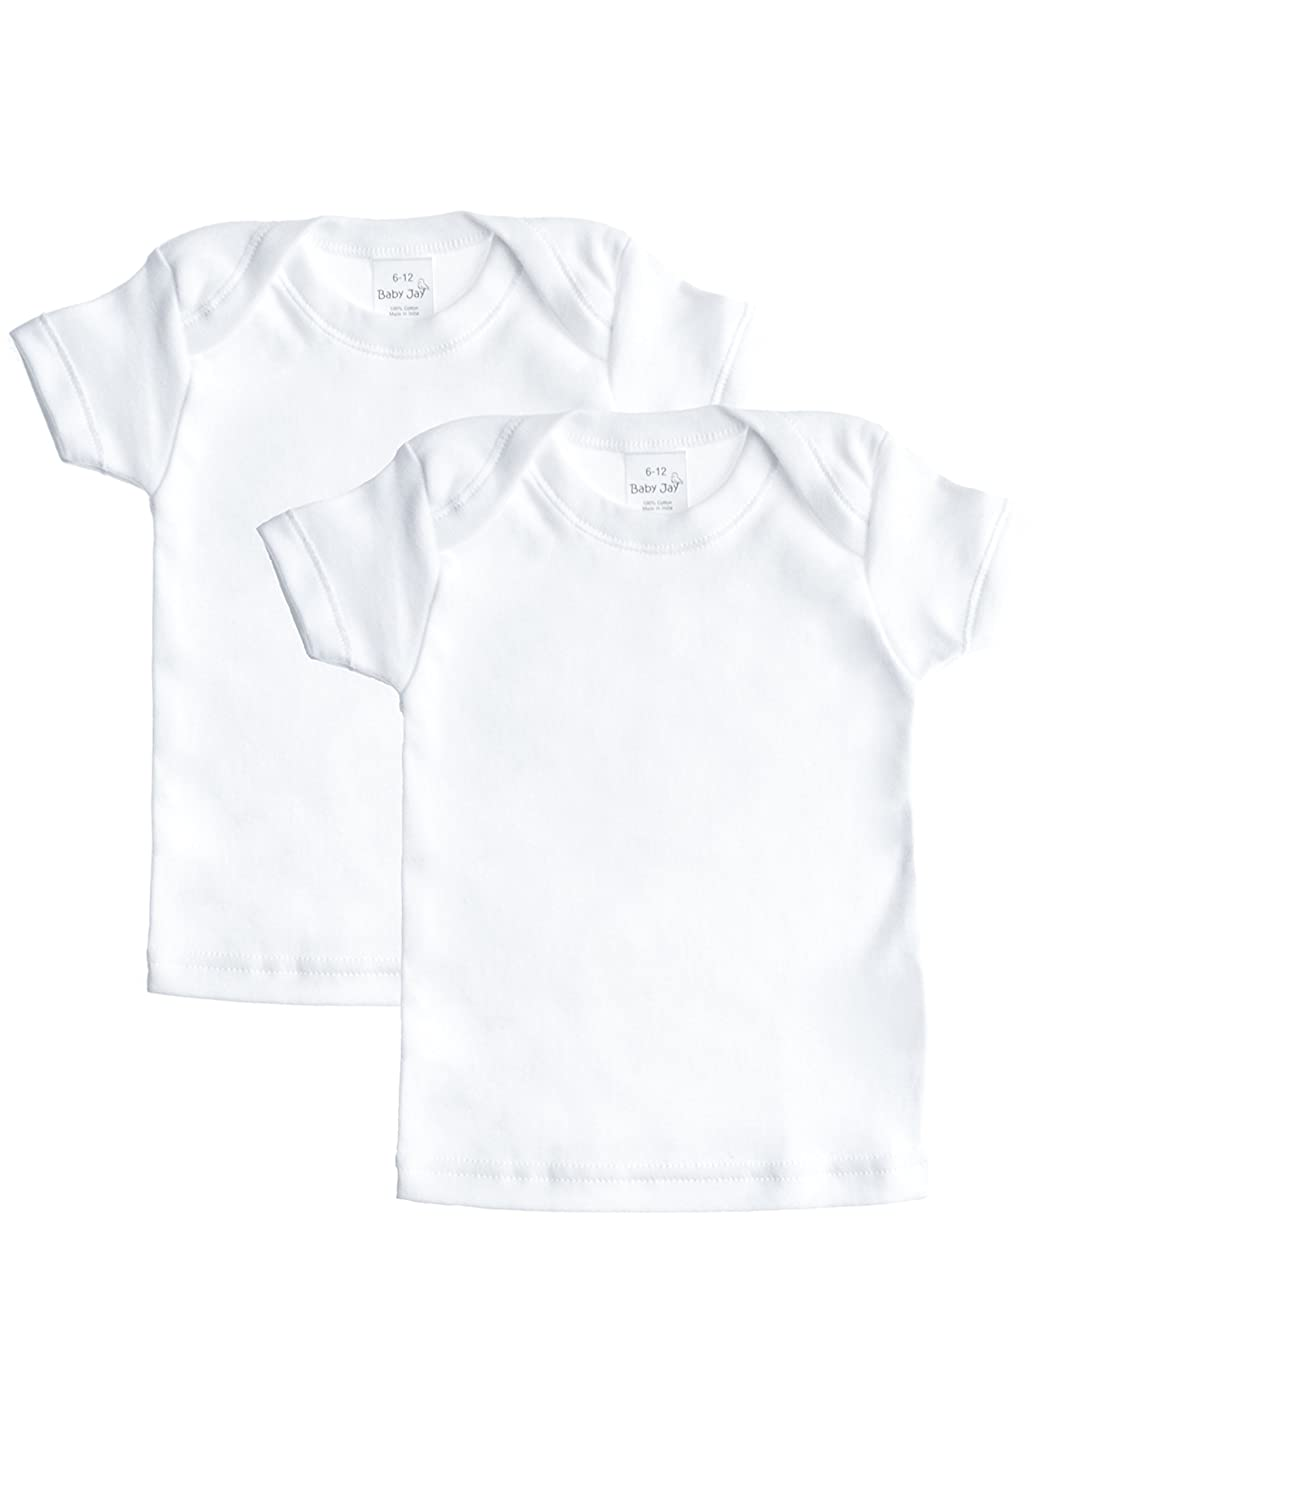 Baby Jay Short Sleeved Undershirt 2 Pack -White Cotton Tee for Boys and Girls WTSE-2PK